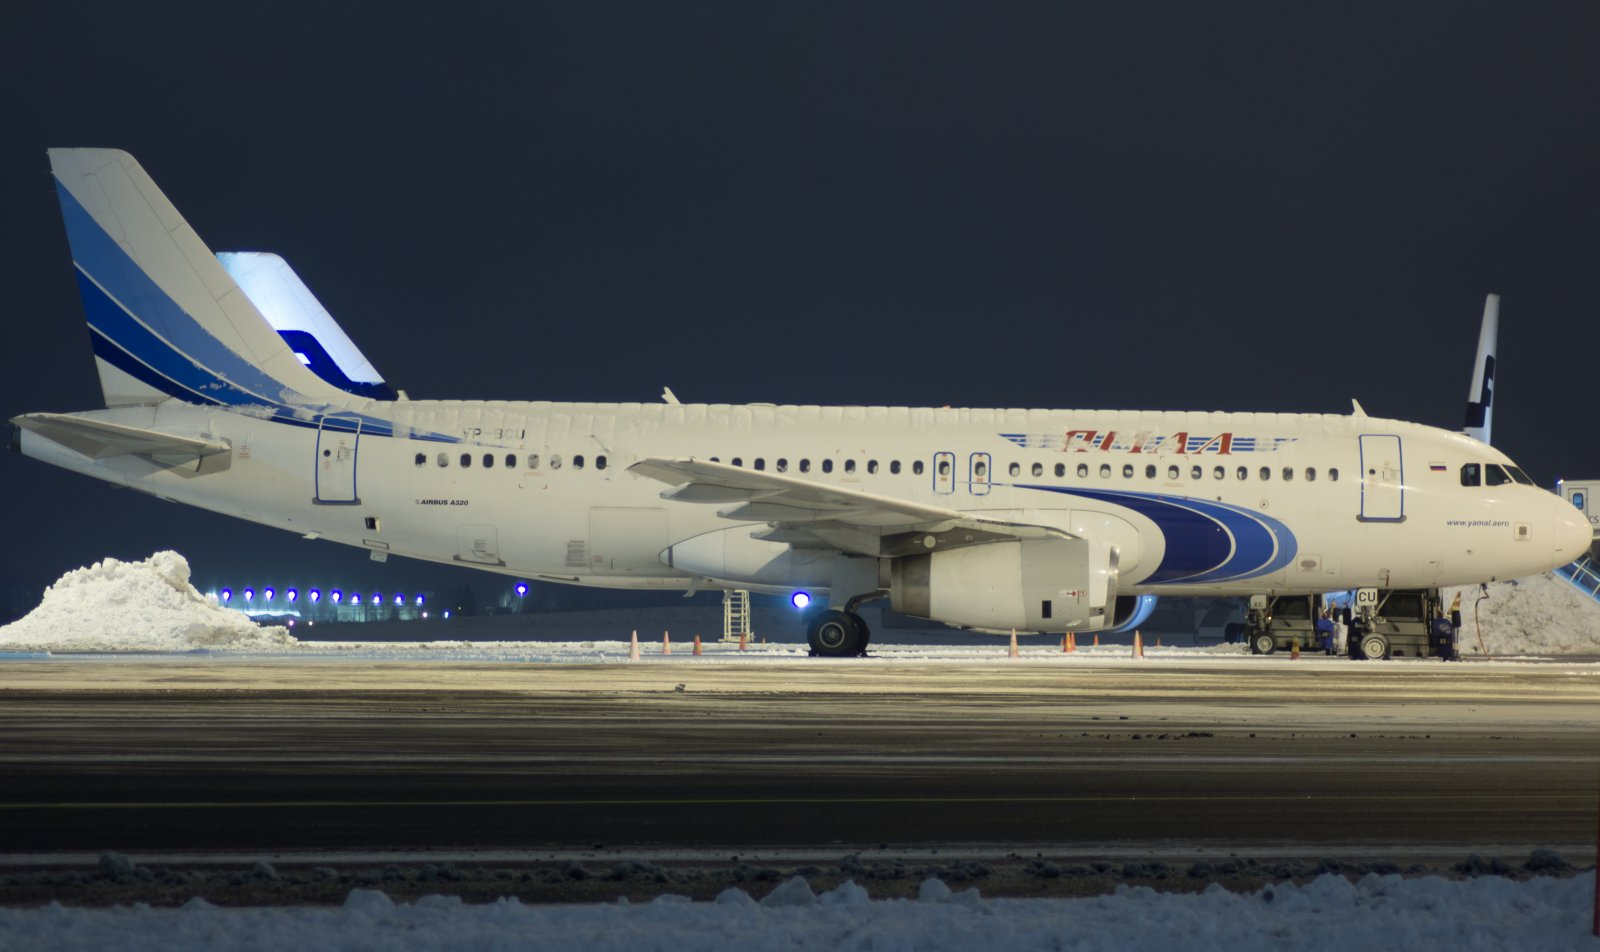 Yamal Airlinesin A320-232 VP-BCU